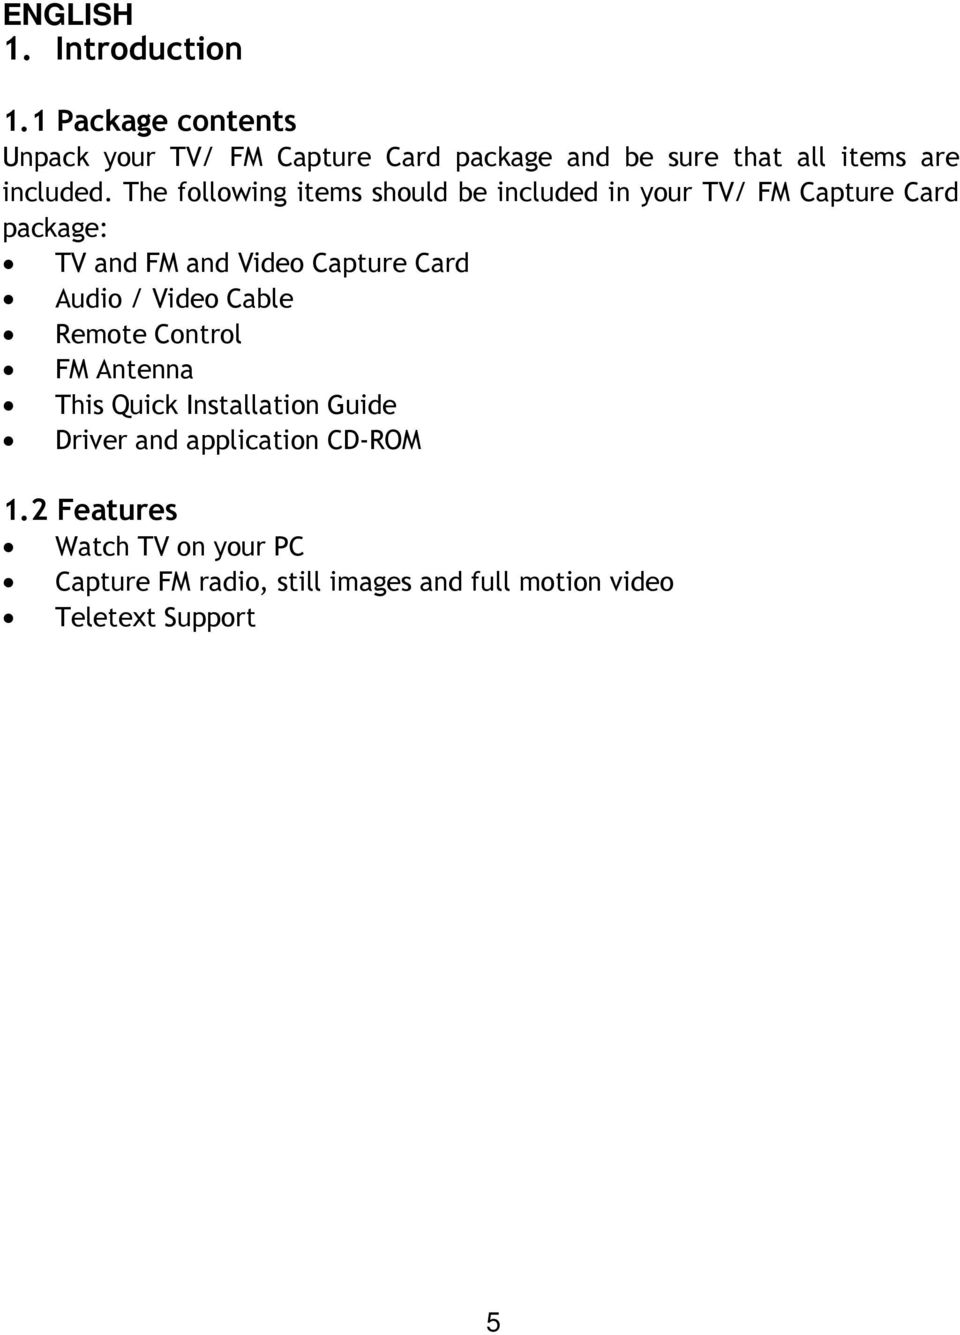 The following items should be included in your TV/ FM Capture Card package: TV and FM and Video Capture Card